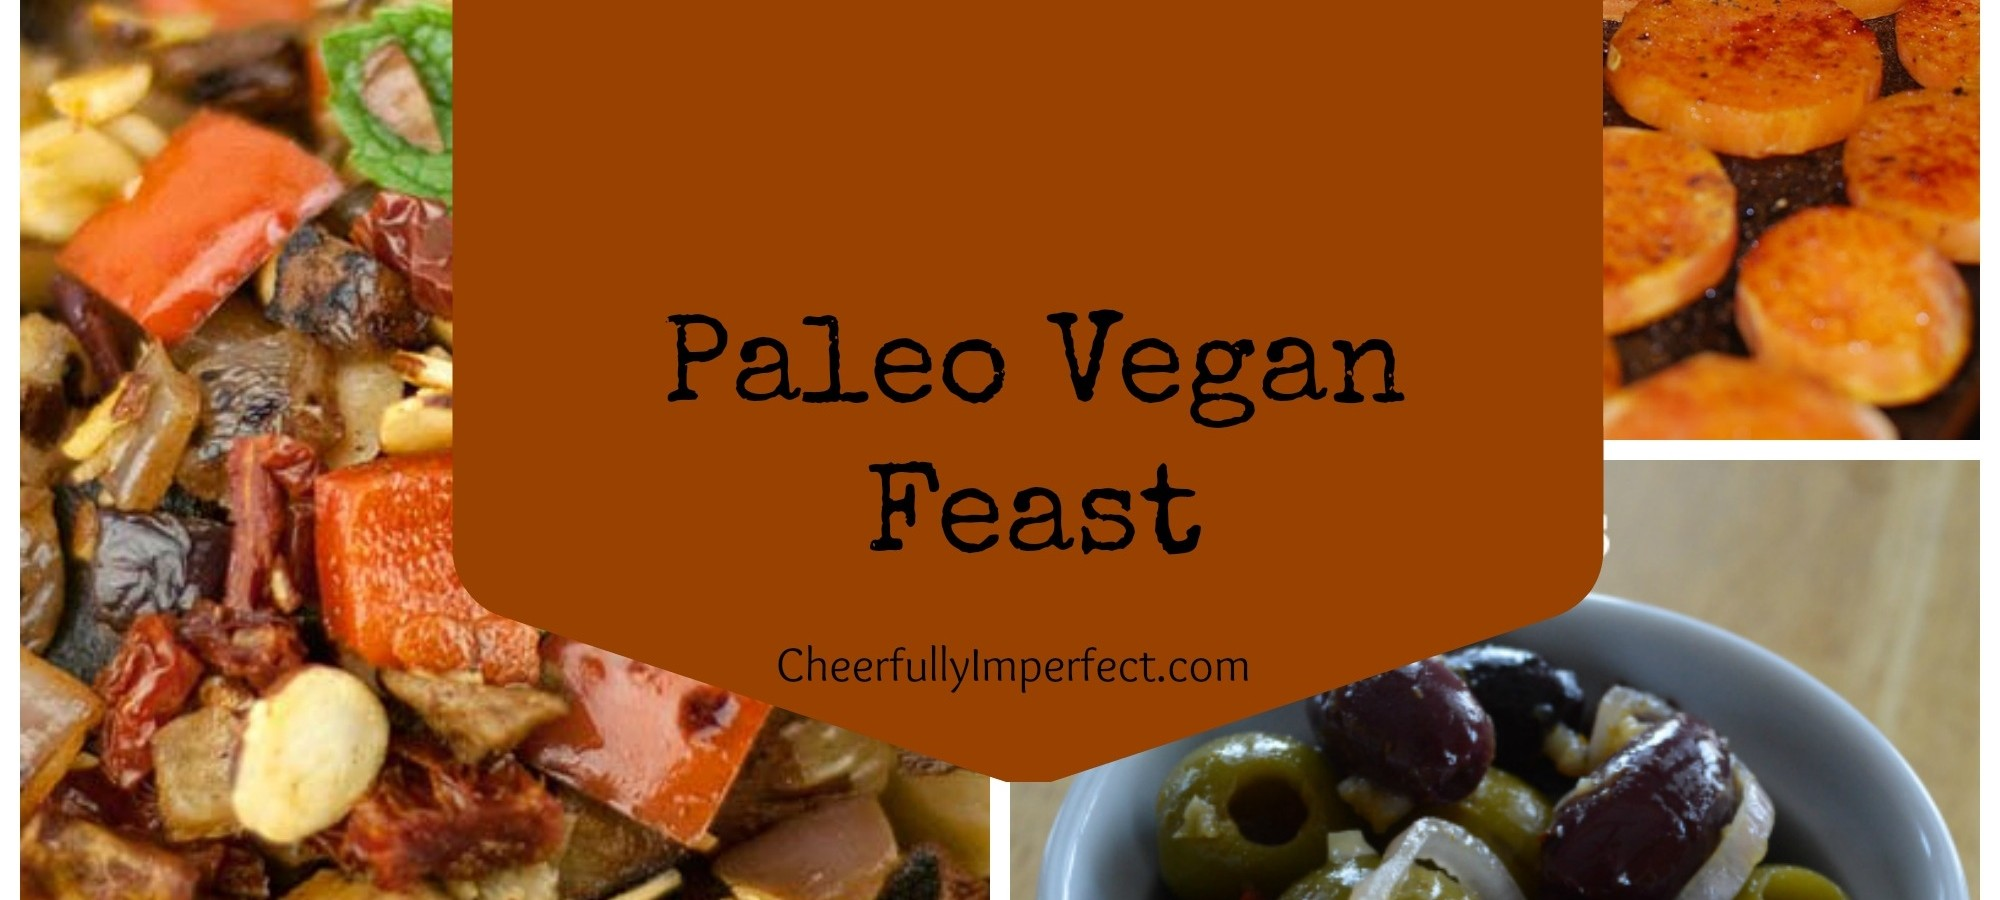 Paleo Vegan Peace Feast – Make Food, not War